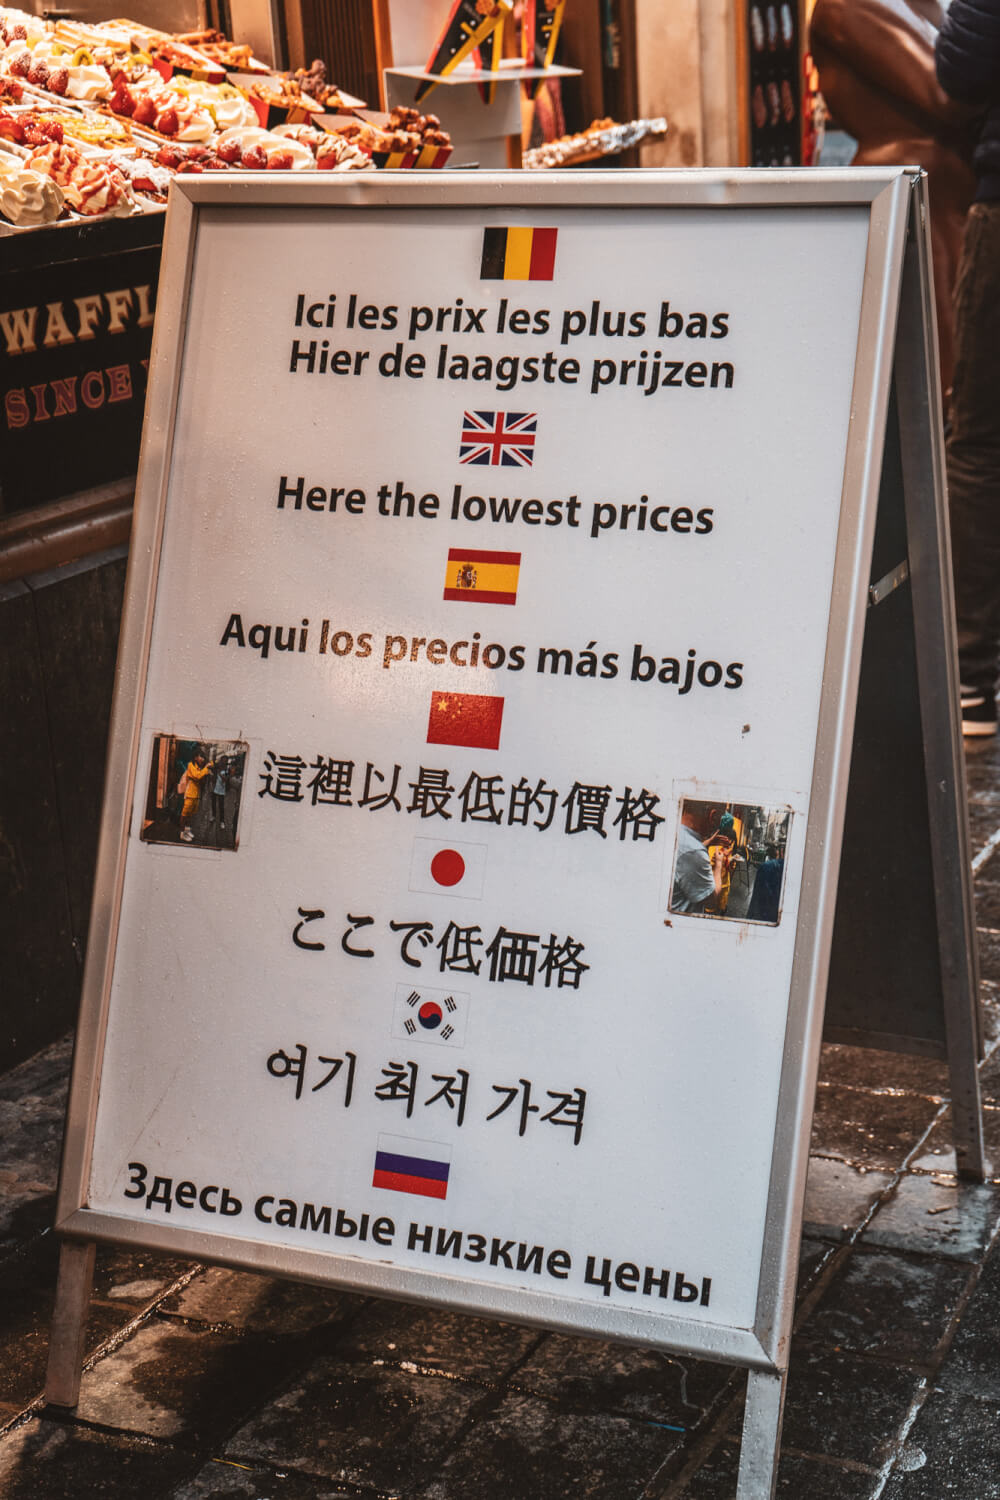 Sign in Brussels city center with multiple languages saying they have the cheapest prices for waffles